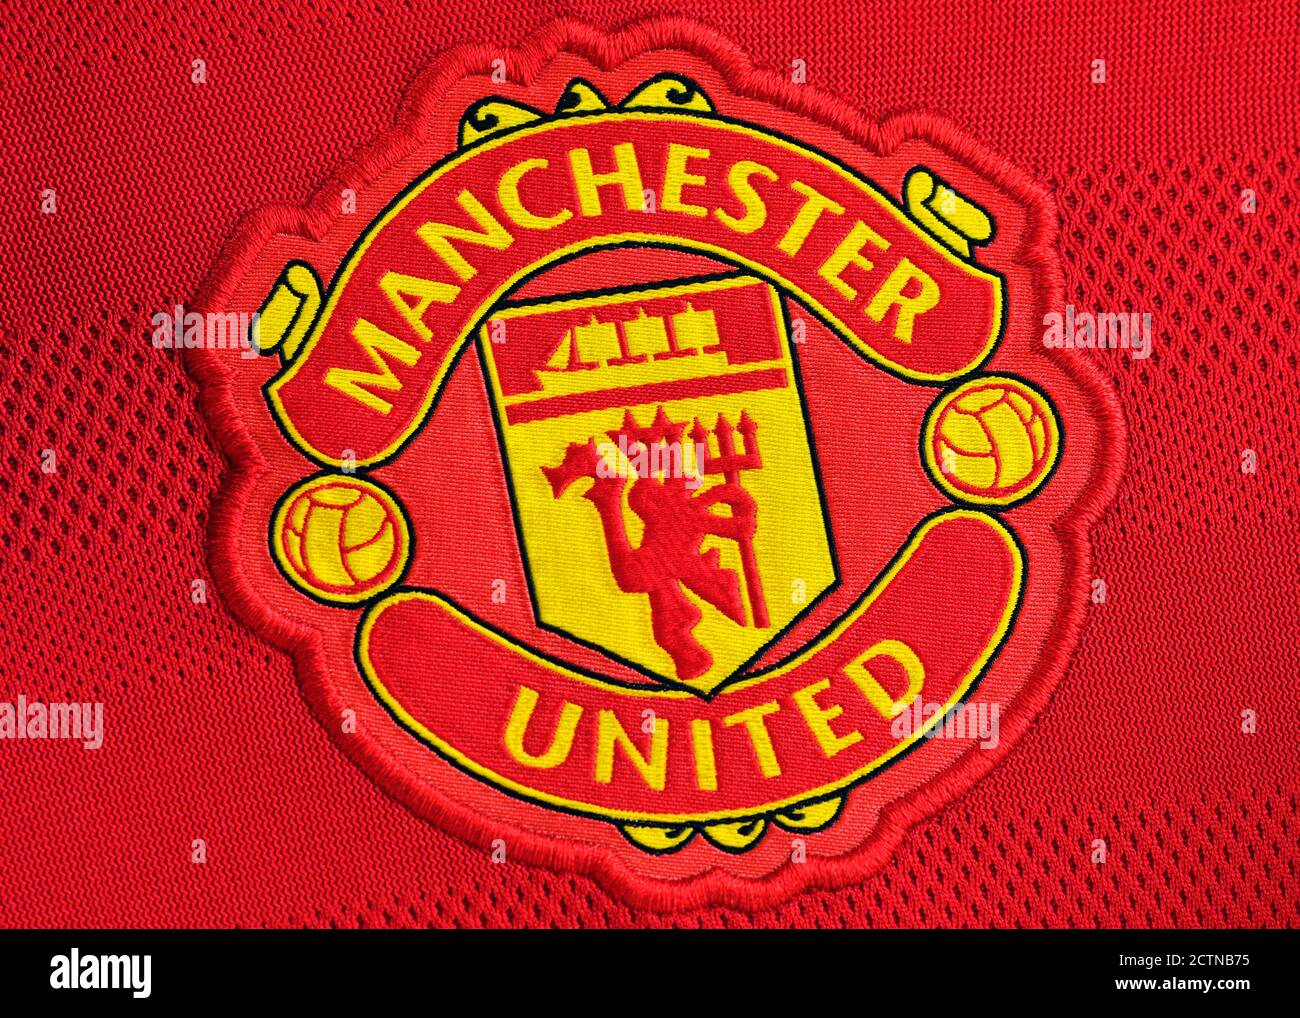 Manchester United Badge High Resolution Stock Photography And Images Alamy